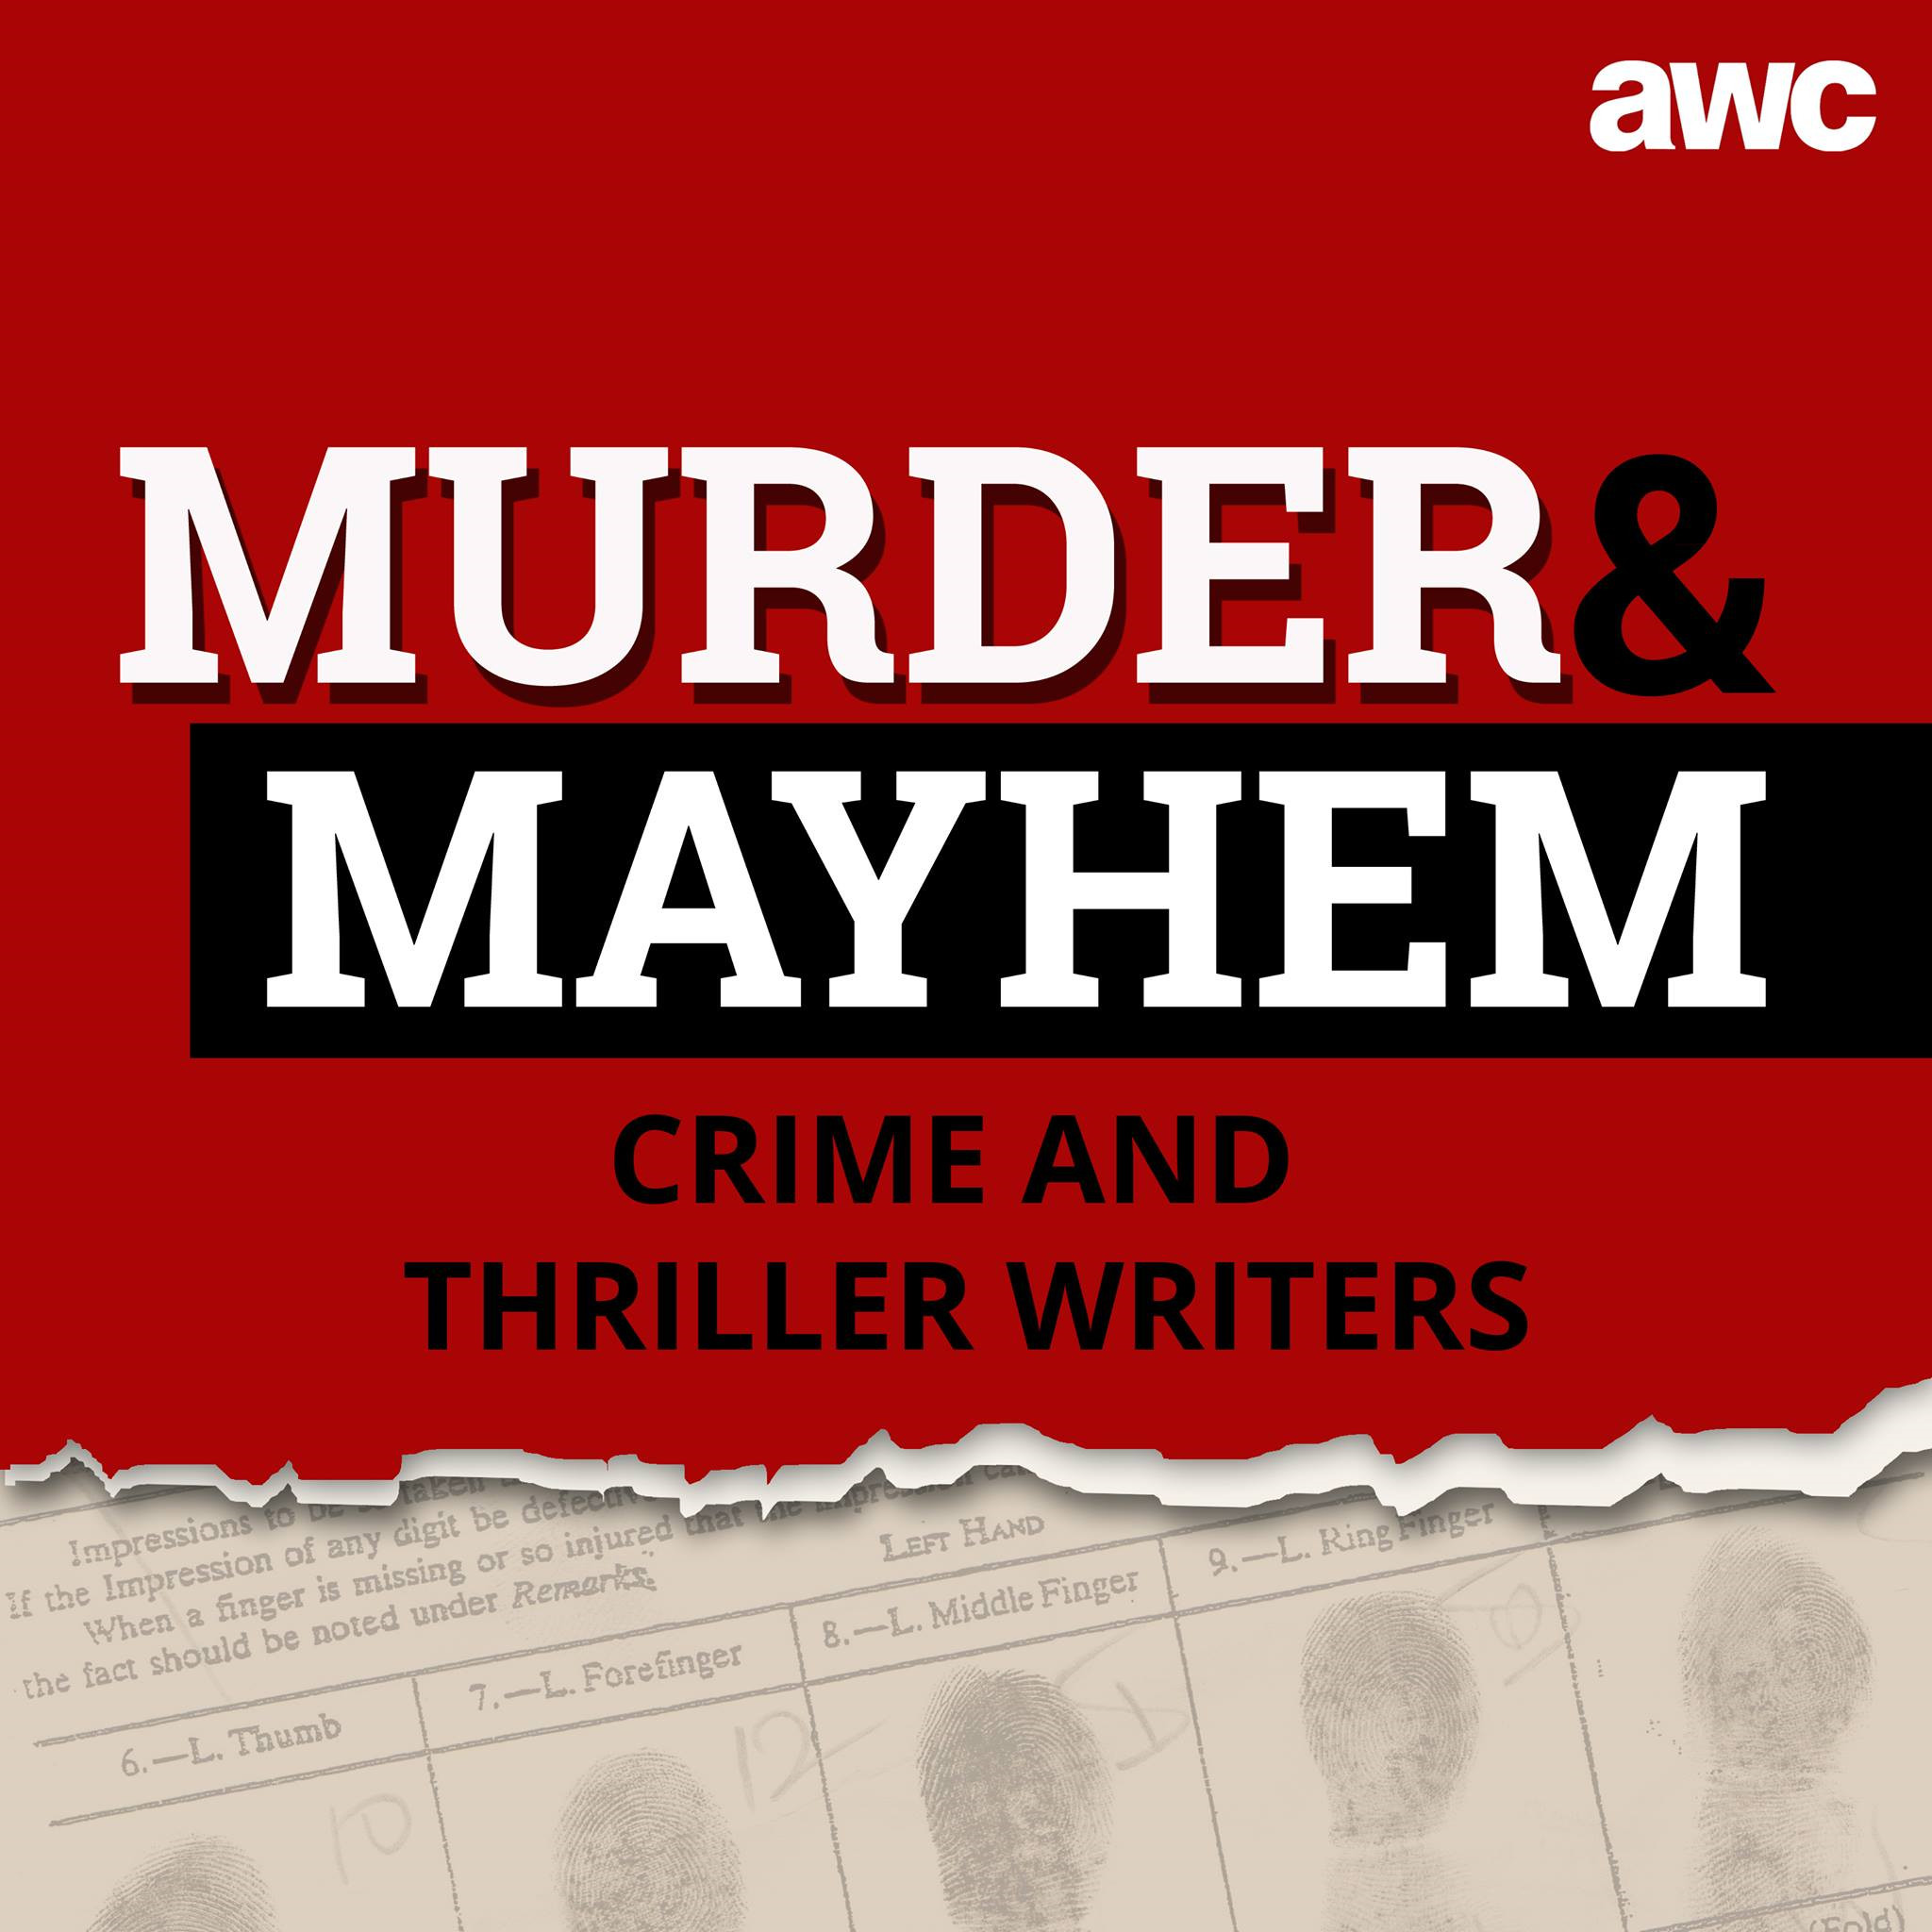 MURDER MAYHEM 30: Bronwyn Parry has published 10 books, and shortlisted for the 2016 Davitt Award.  @BronwynParry